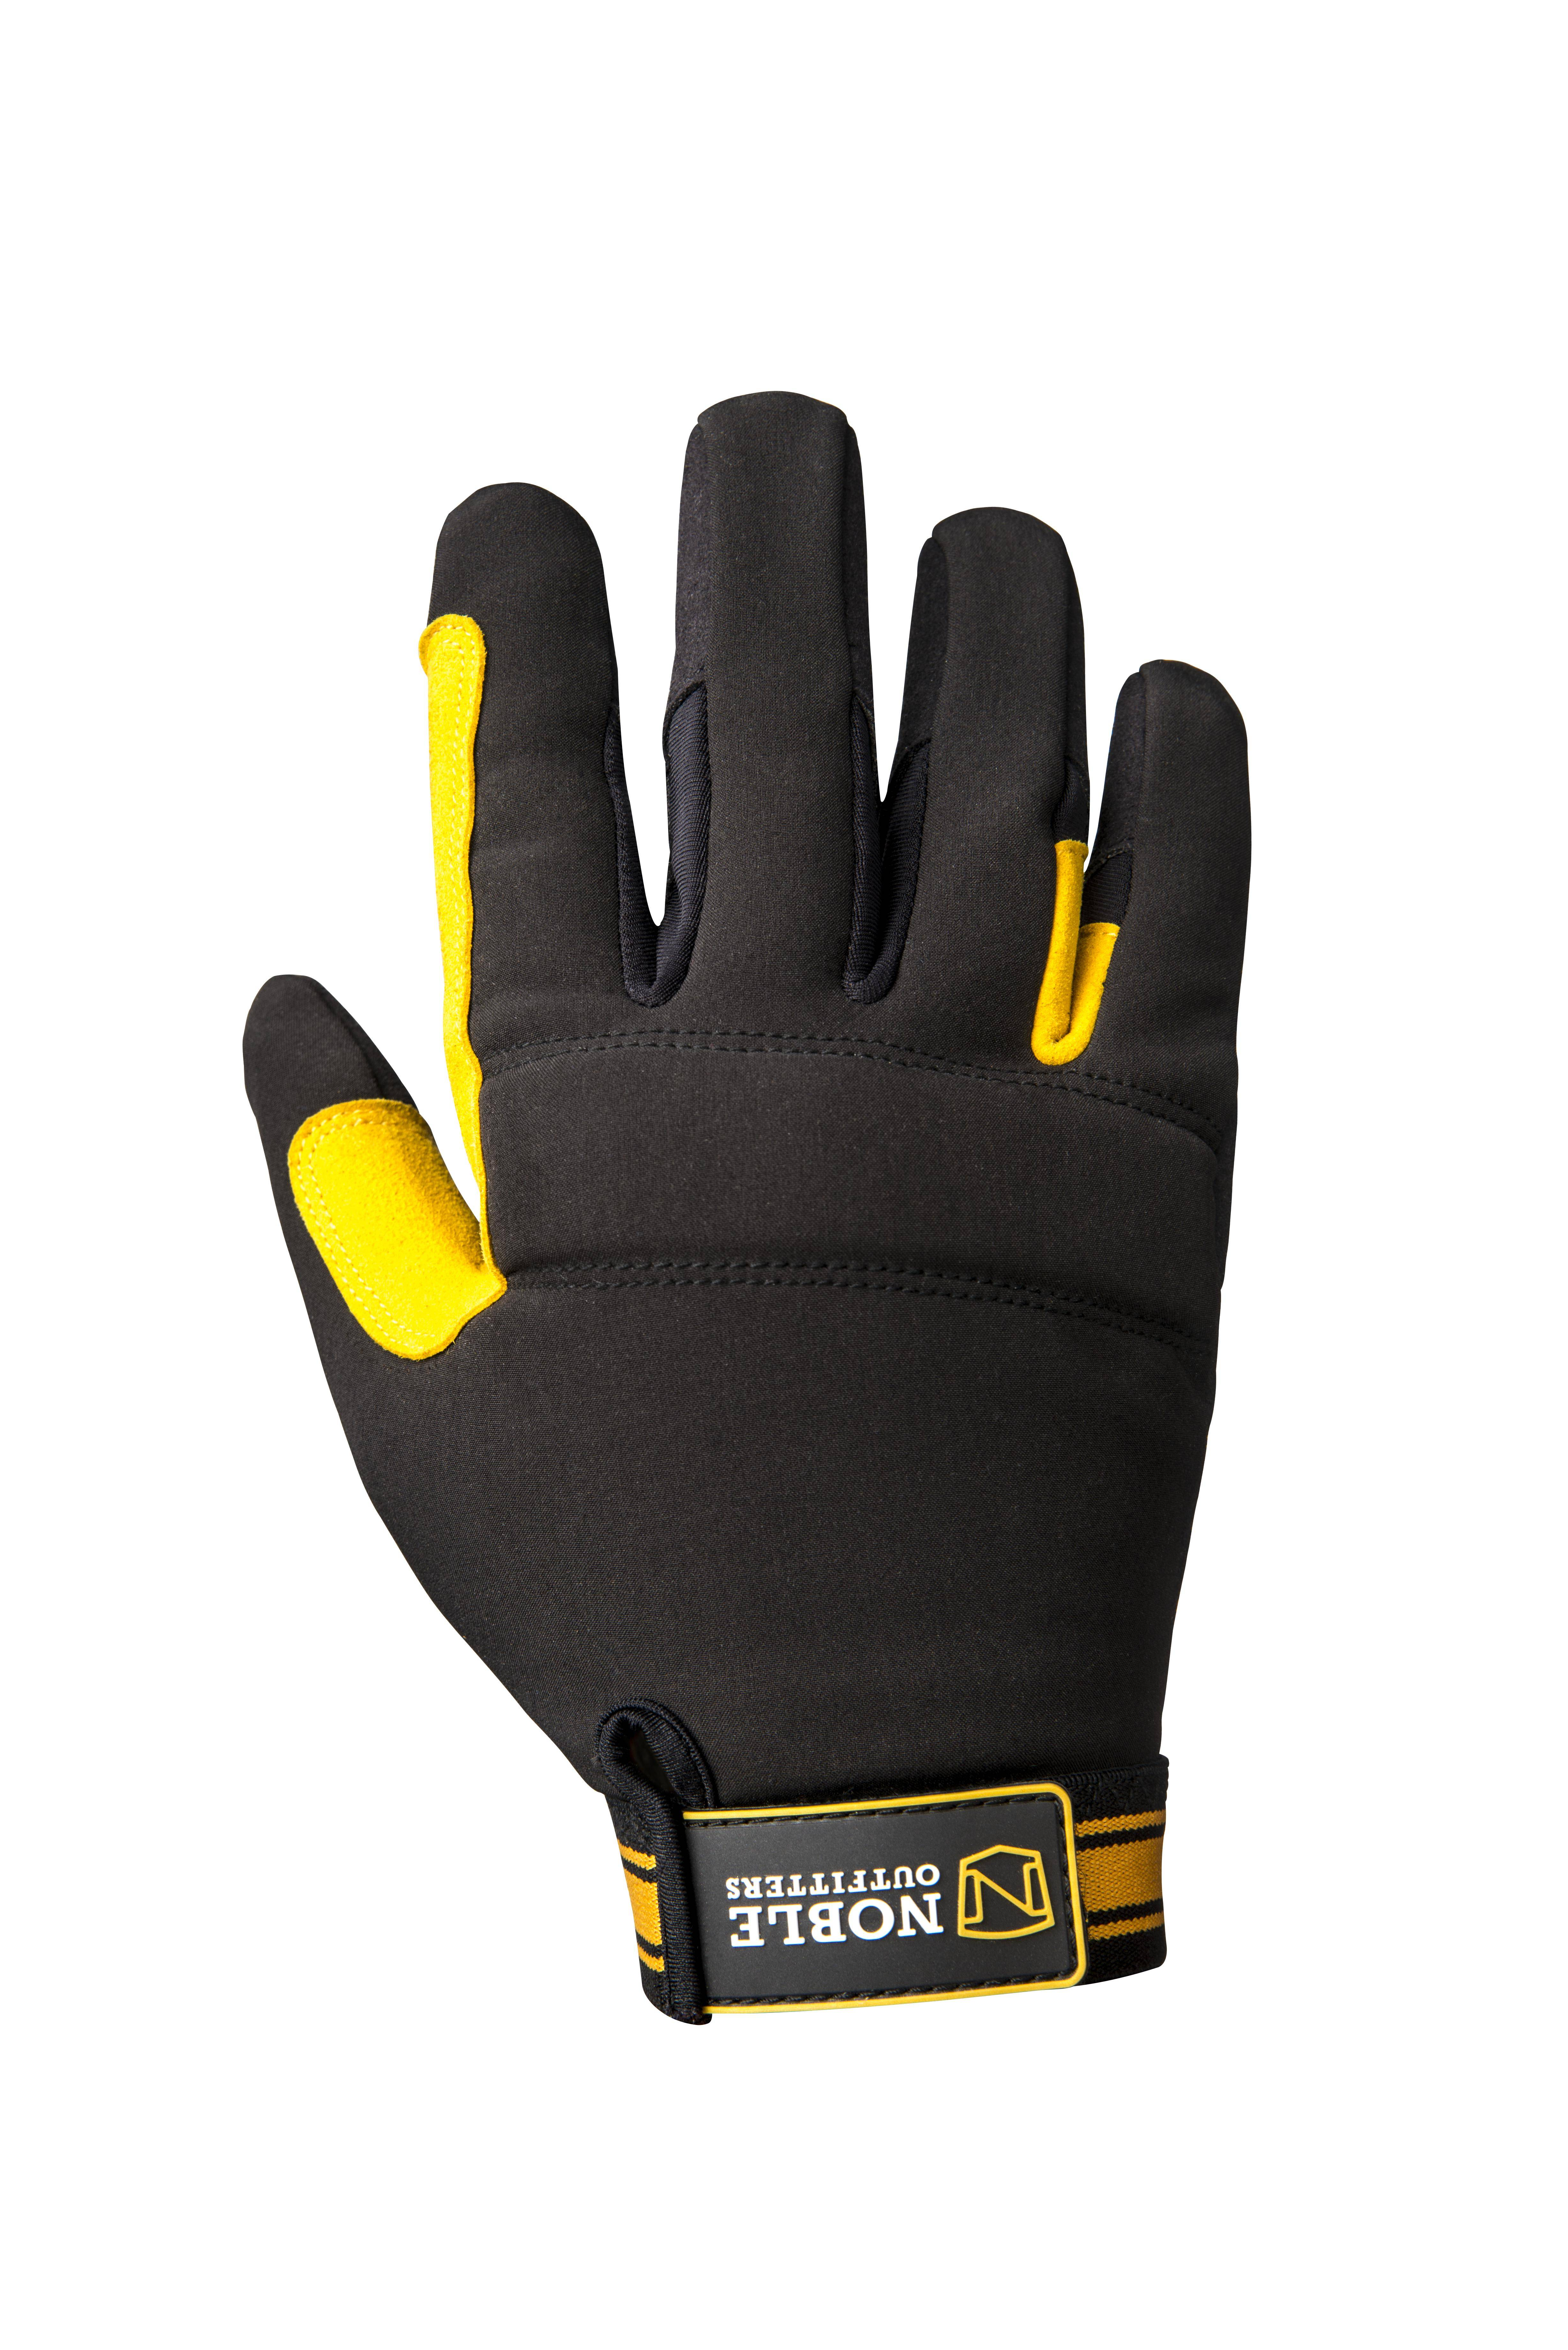 Noble Outfitters Outrider Arctic Gloves